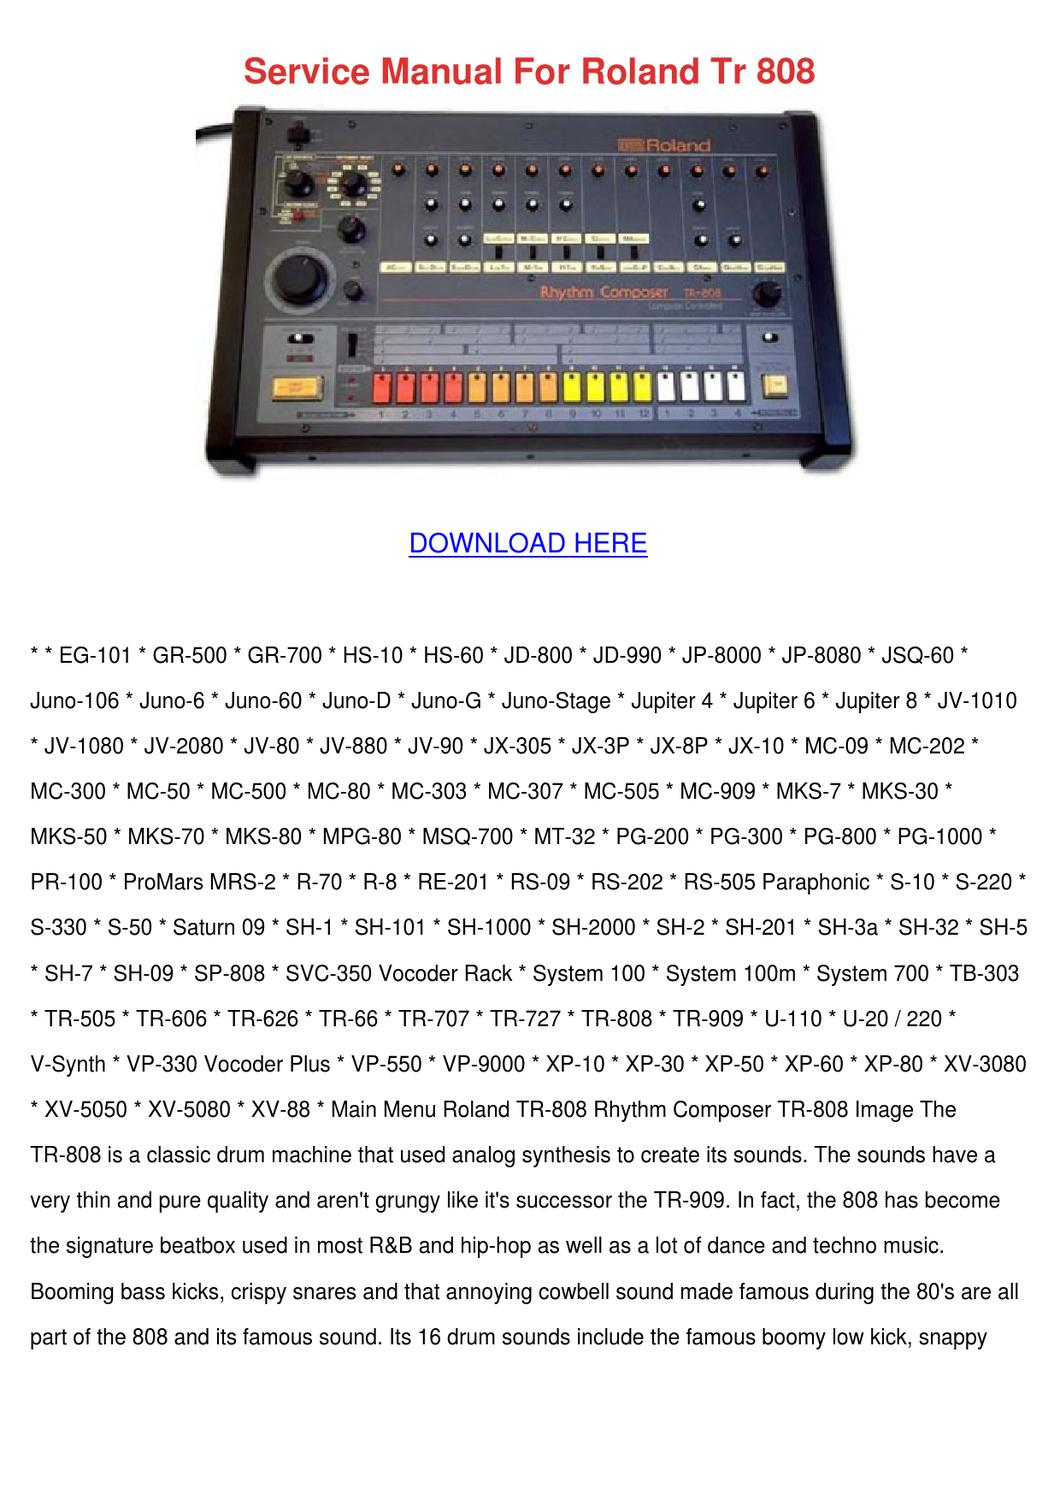 Service Manual For Roland Tr 808 by Scarlet Tabron - issuu